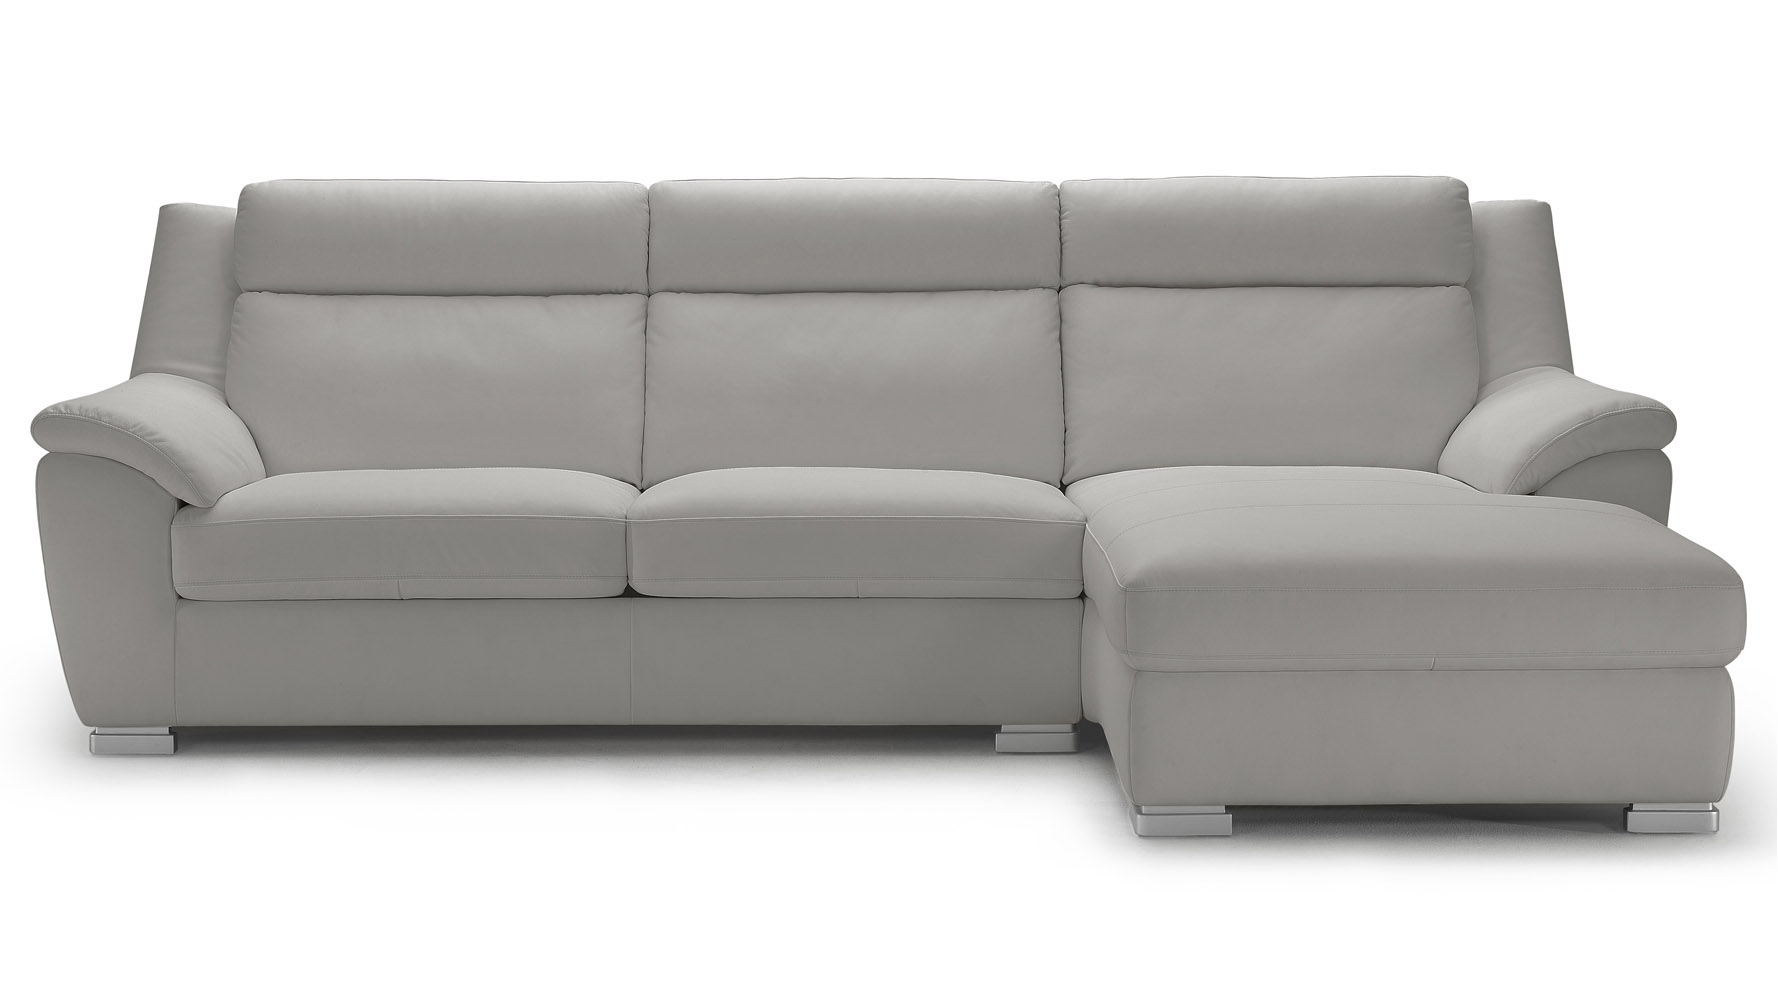 light grey leather sofa bed modern white sleeper chaise with